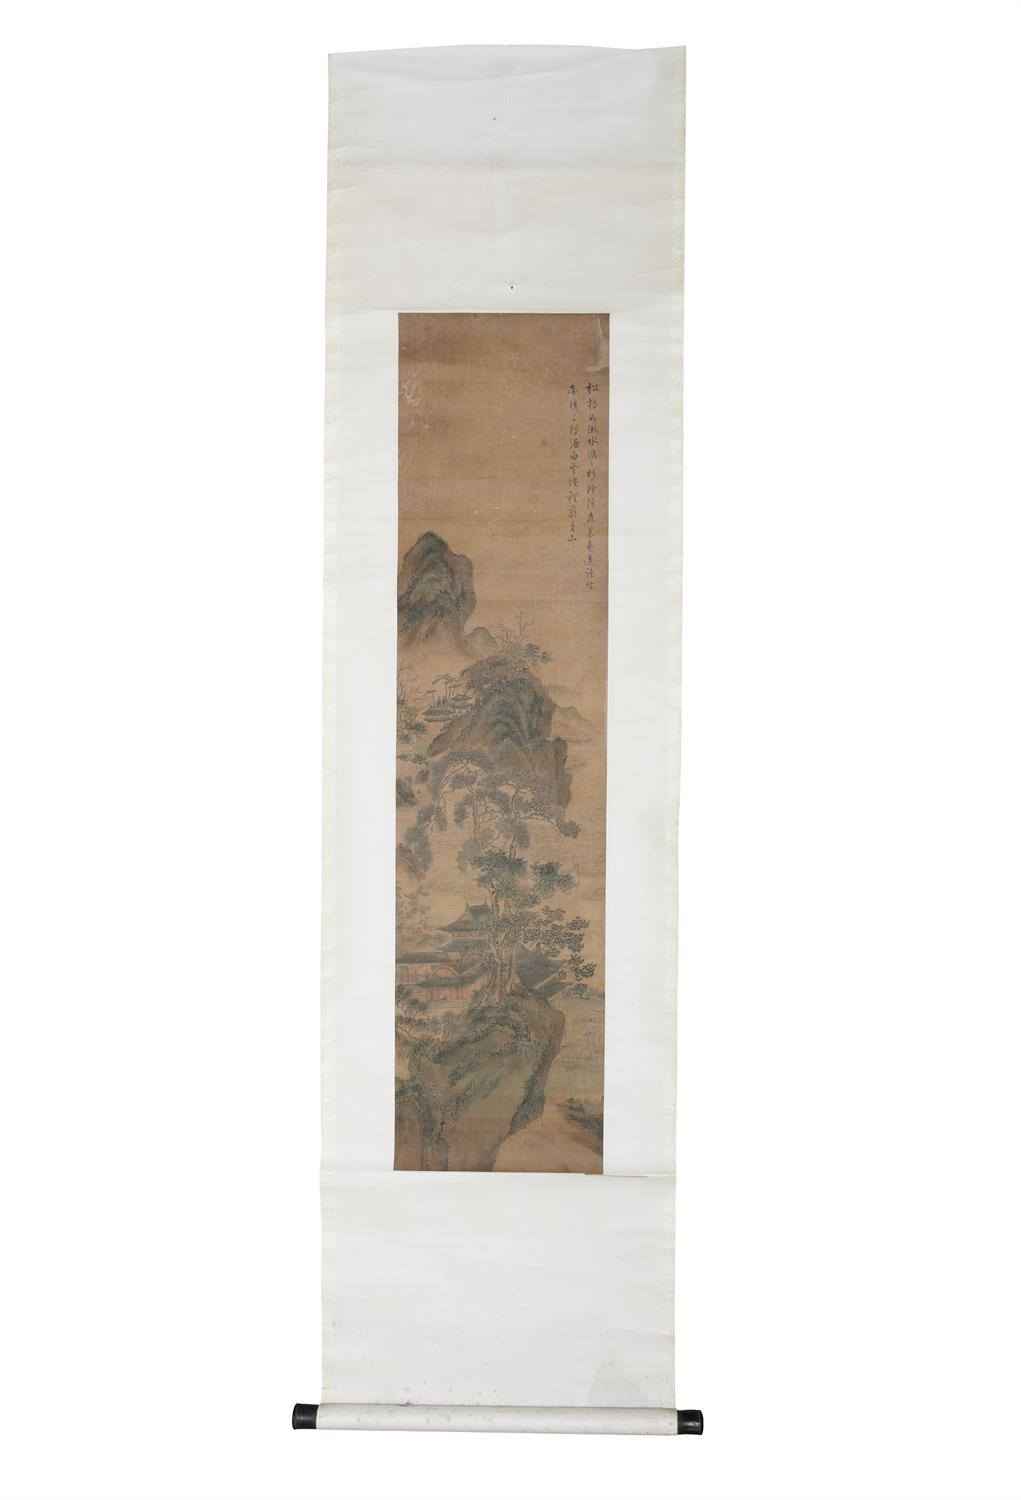 CHINESE SCHOOL, AFTER PURU 溥儒 ALSO KNOWN AS PU XINYU 溥心畬 (1896-1963) Landscape with a pavilion and - Image 6 of 7